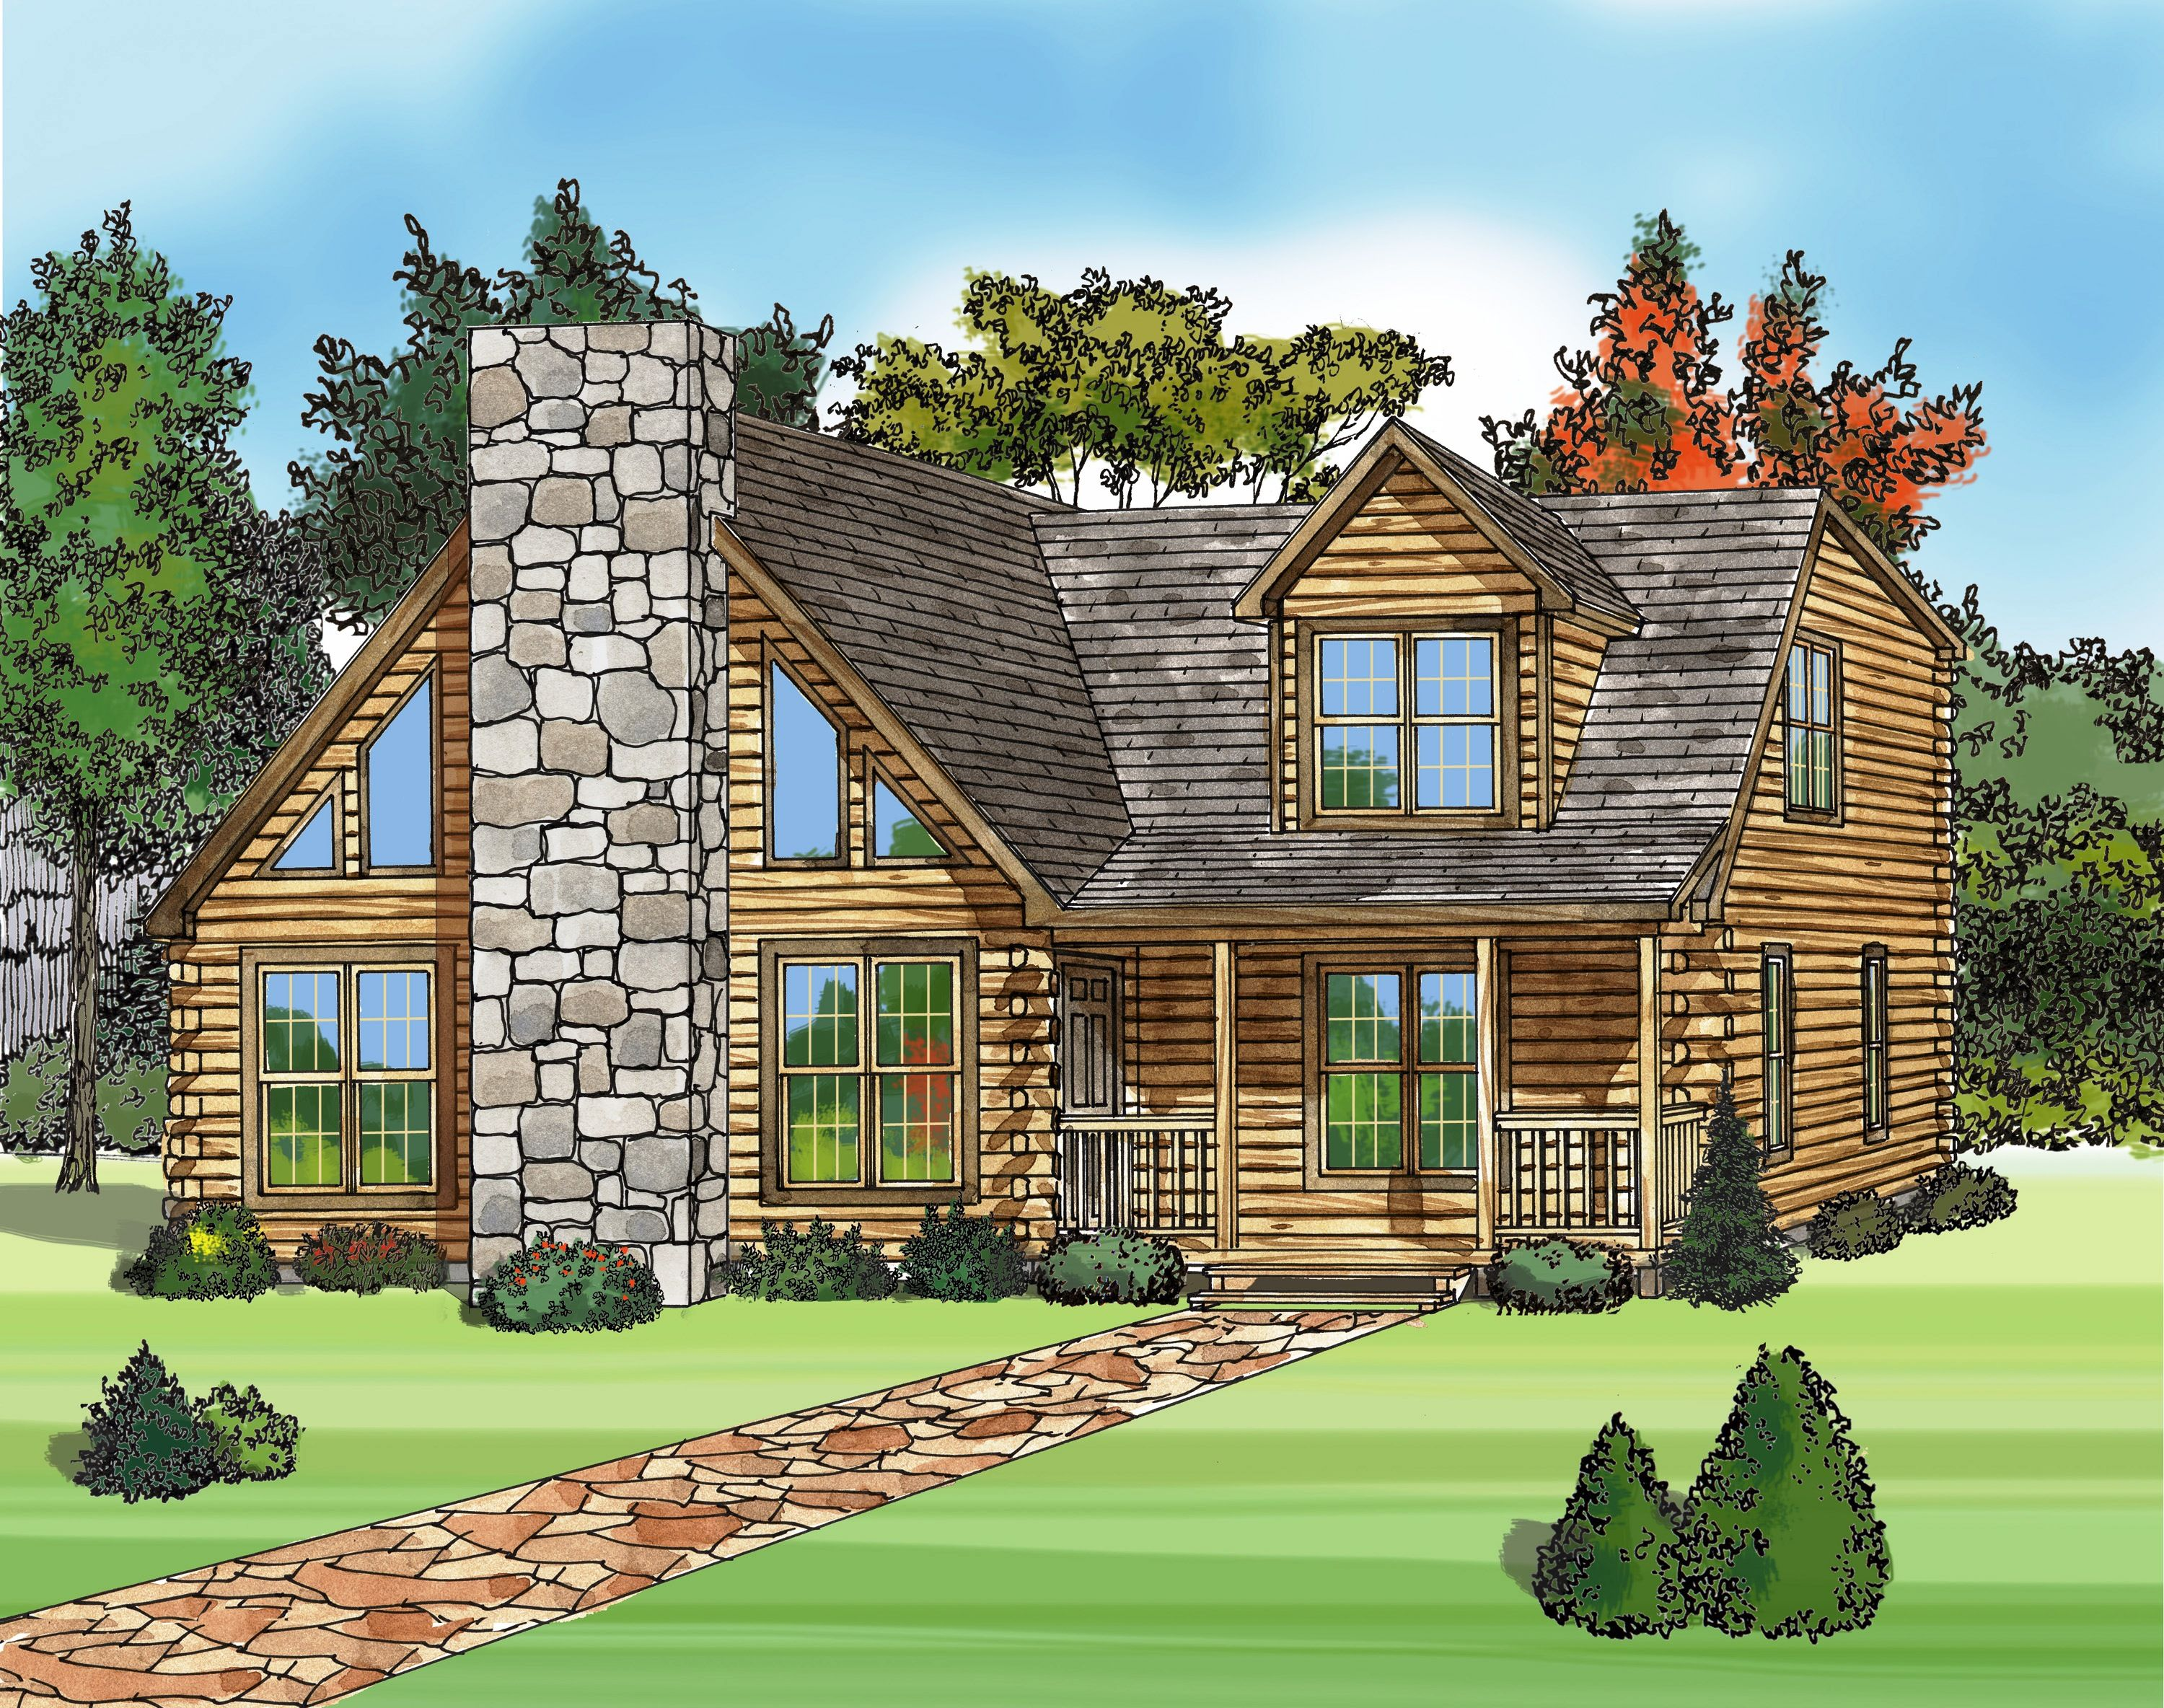 Architecture, : Awesome Modular Log Home Plans Sketch With Stone Material  Of Chimney